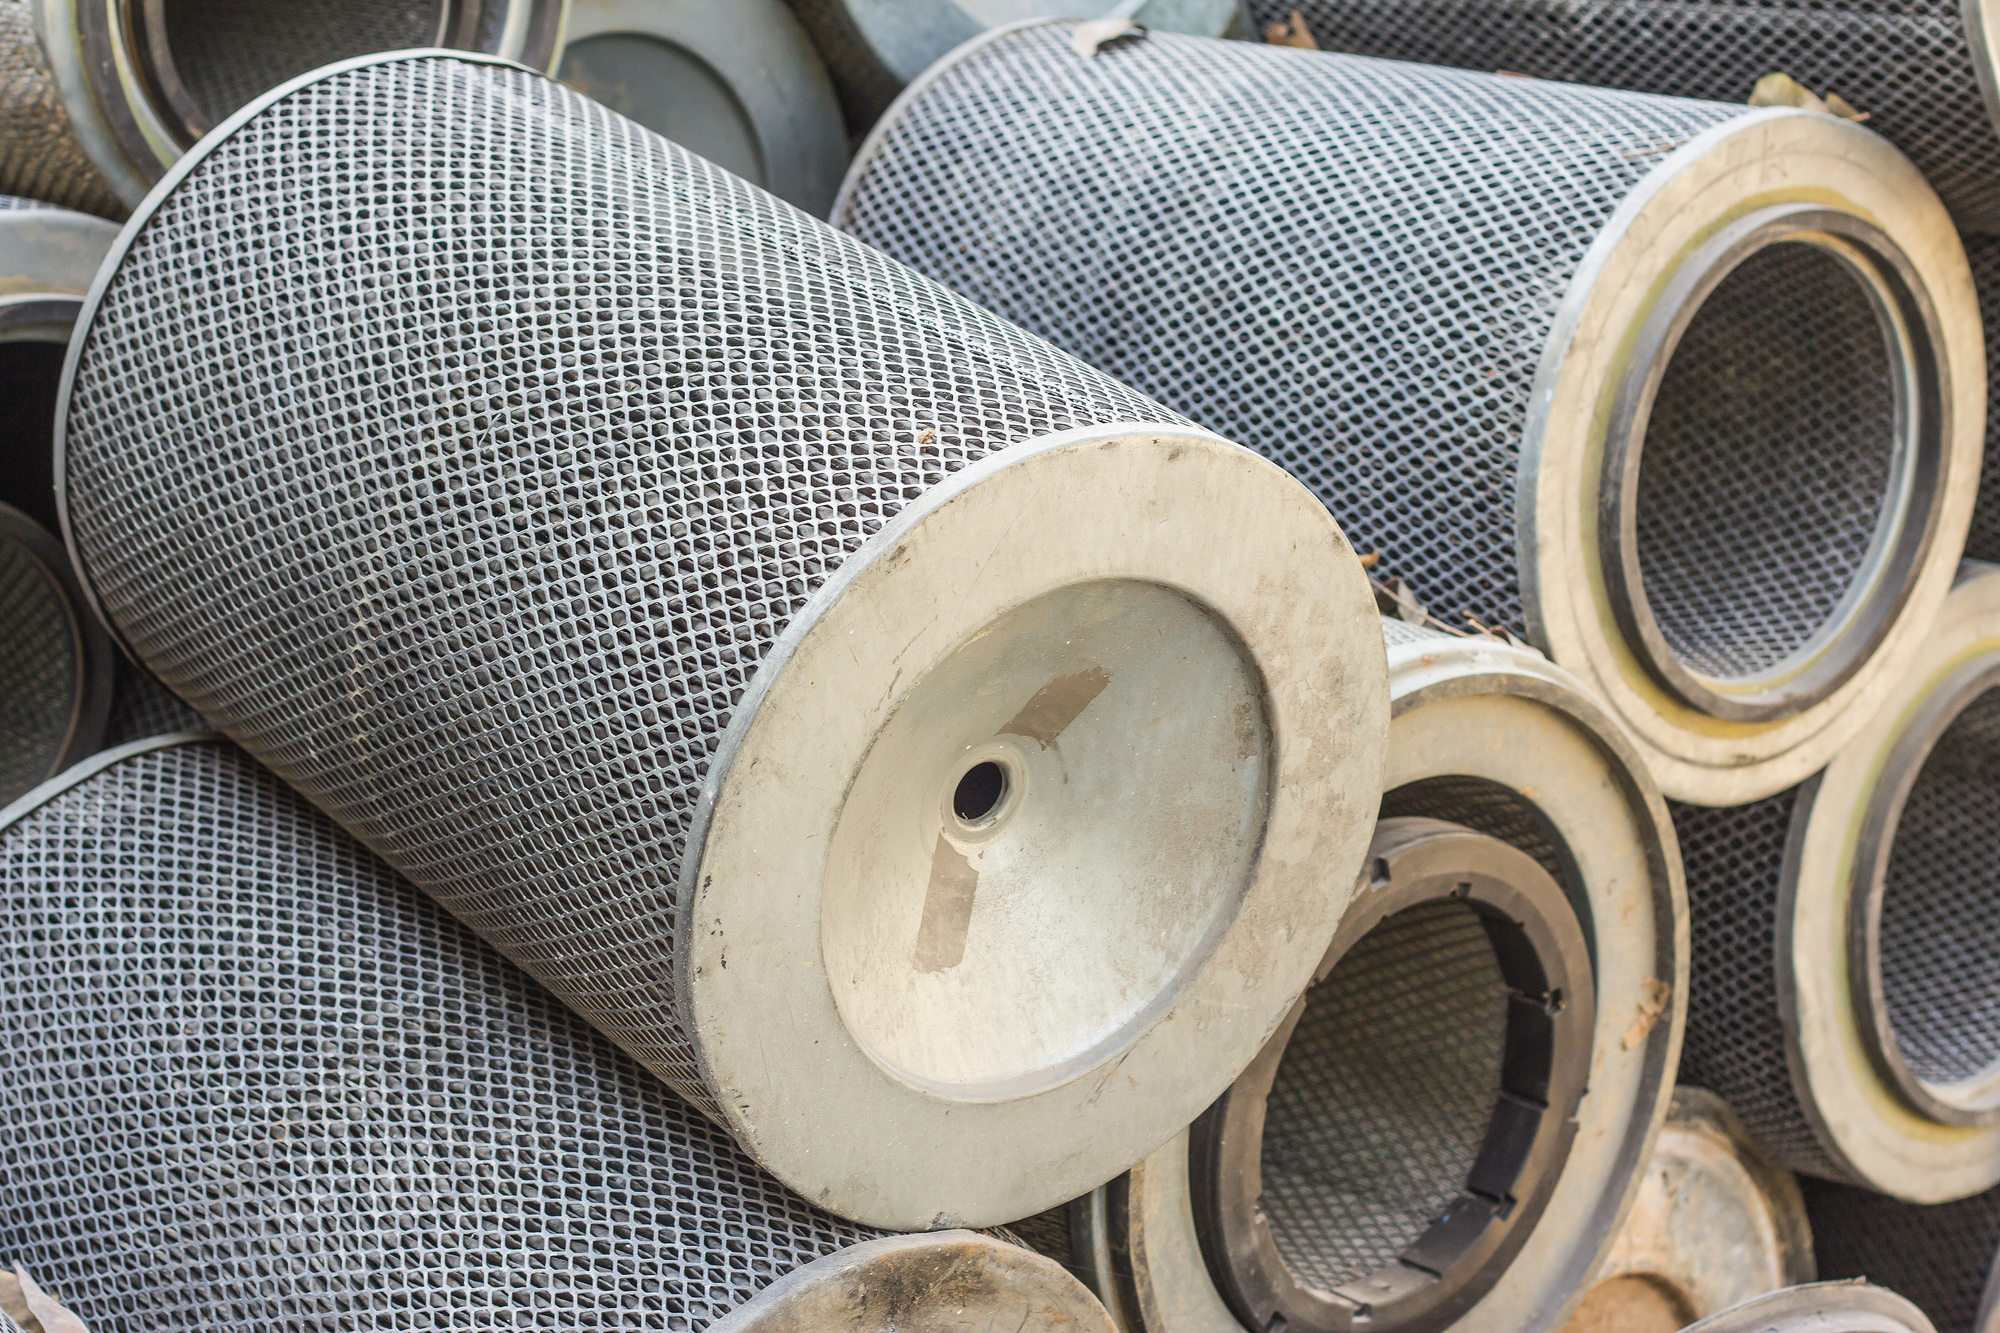 8 Dirty Air Filter Symptoms: How to Know When to Clean Your